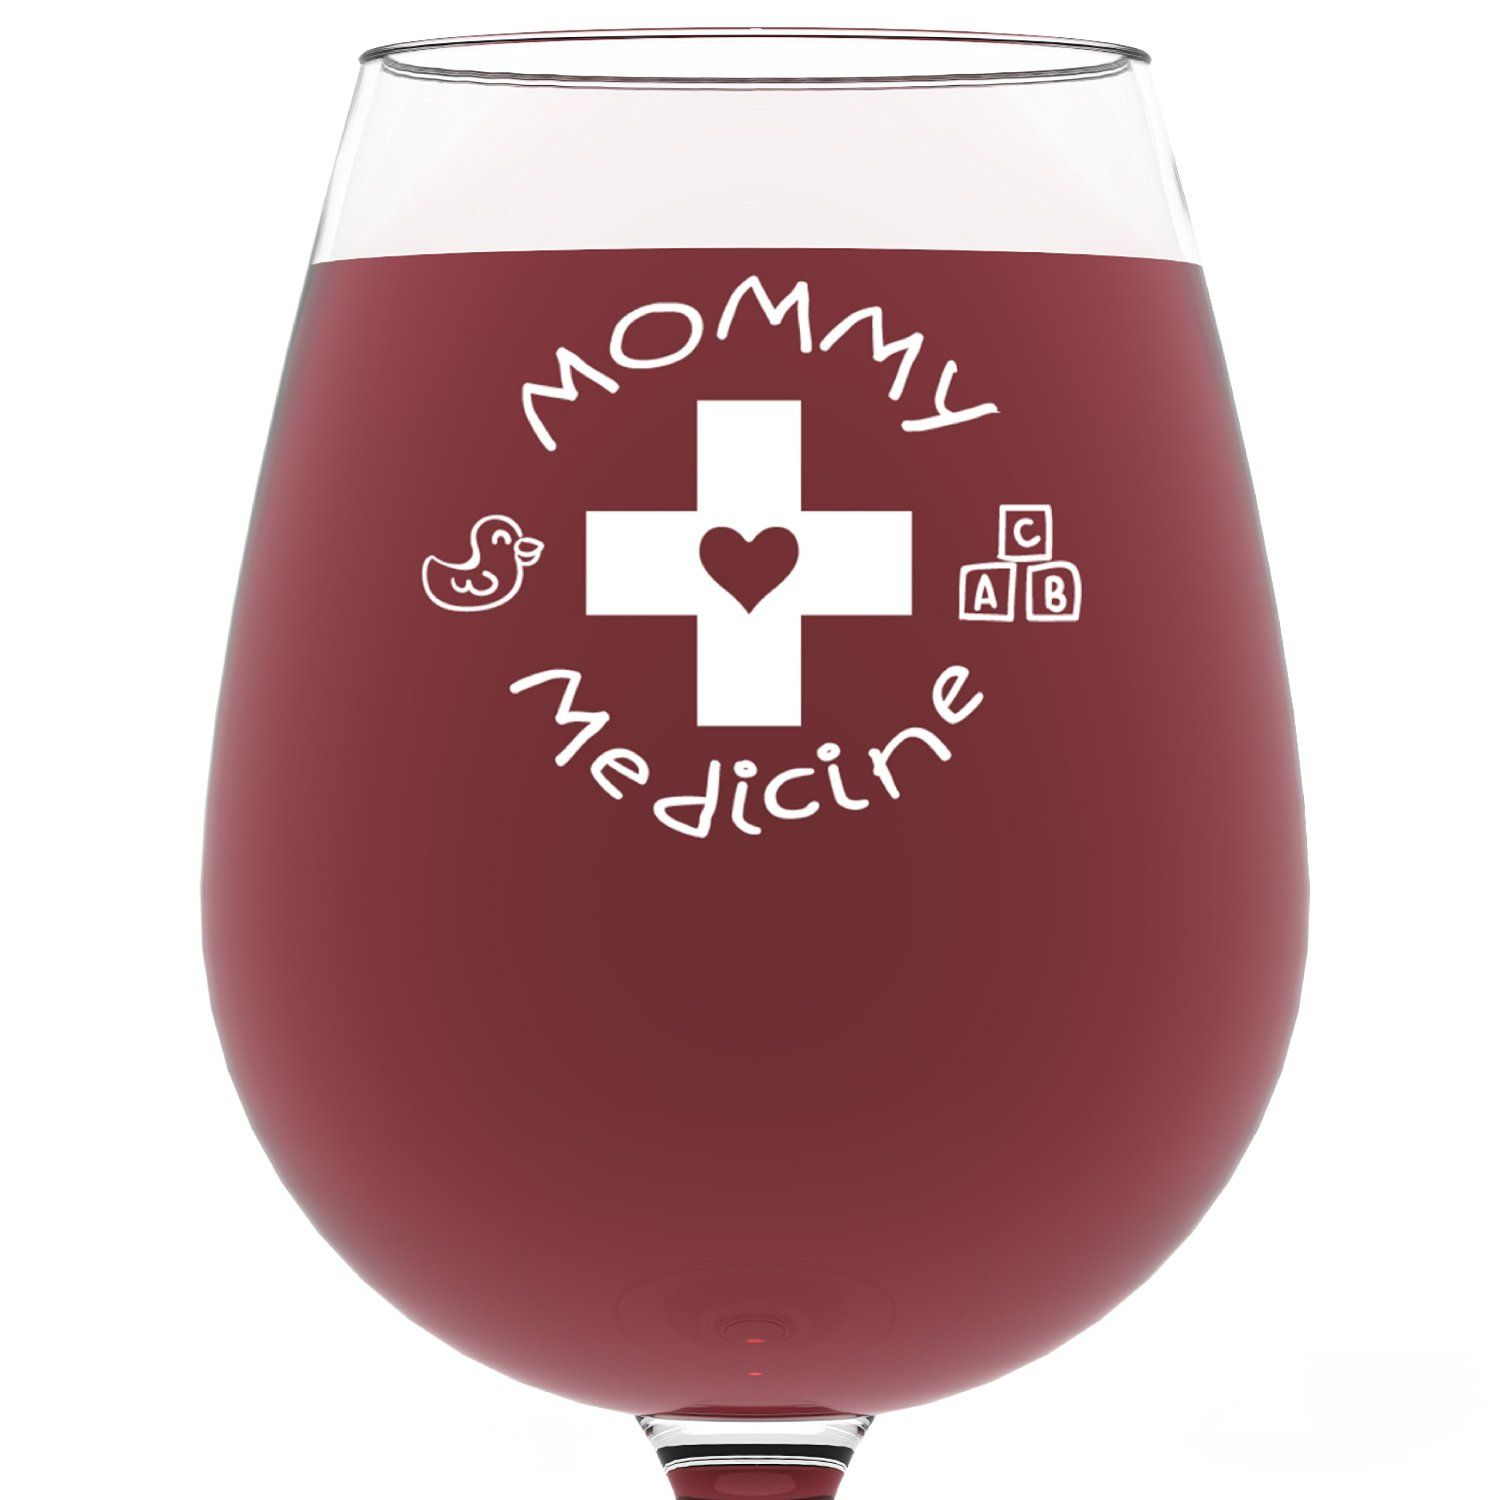 Awesome Funny Presents For Her Part - 9: Mommy Medicine Funny Wine Glass 13 Oz - Best Motheru0027s Day Gifts For Mom -  Unique Birthday Gift For Her From Son Or Daughter - Cool Humorous Present  Idea For ...